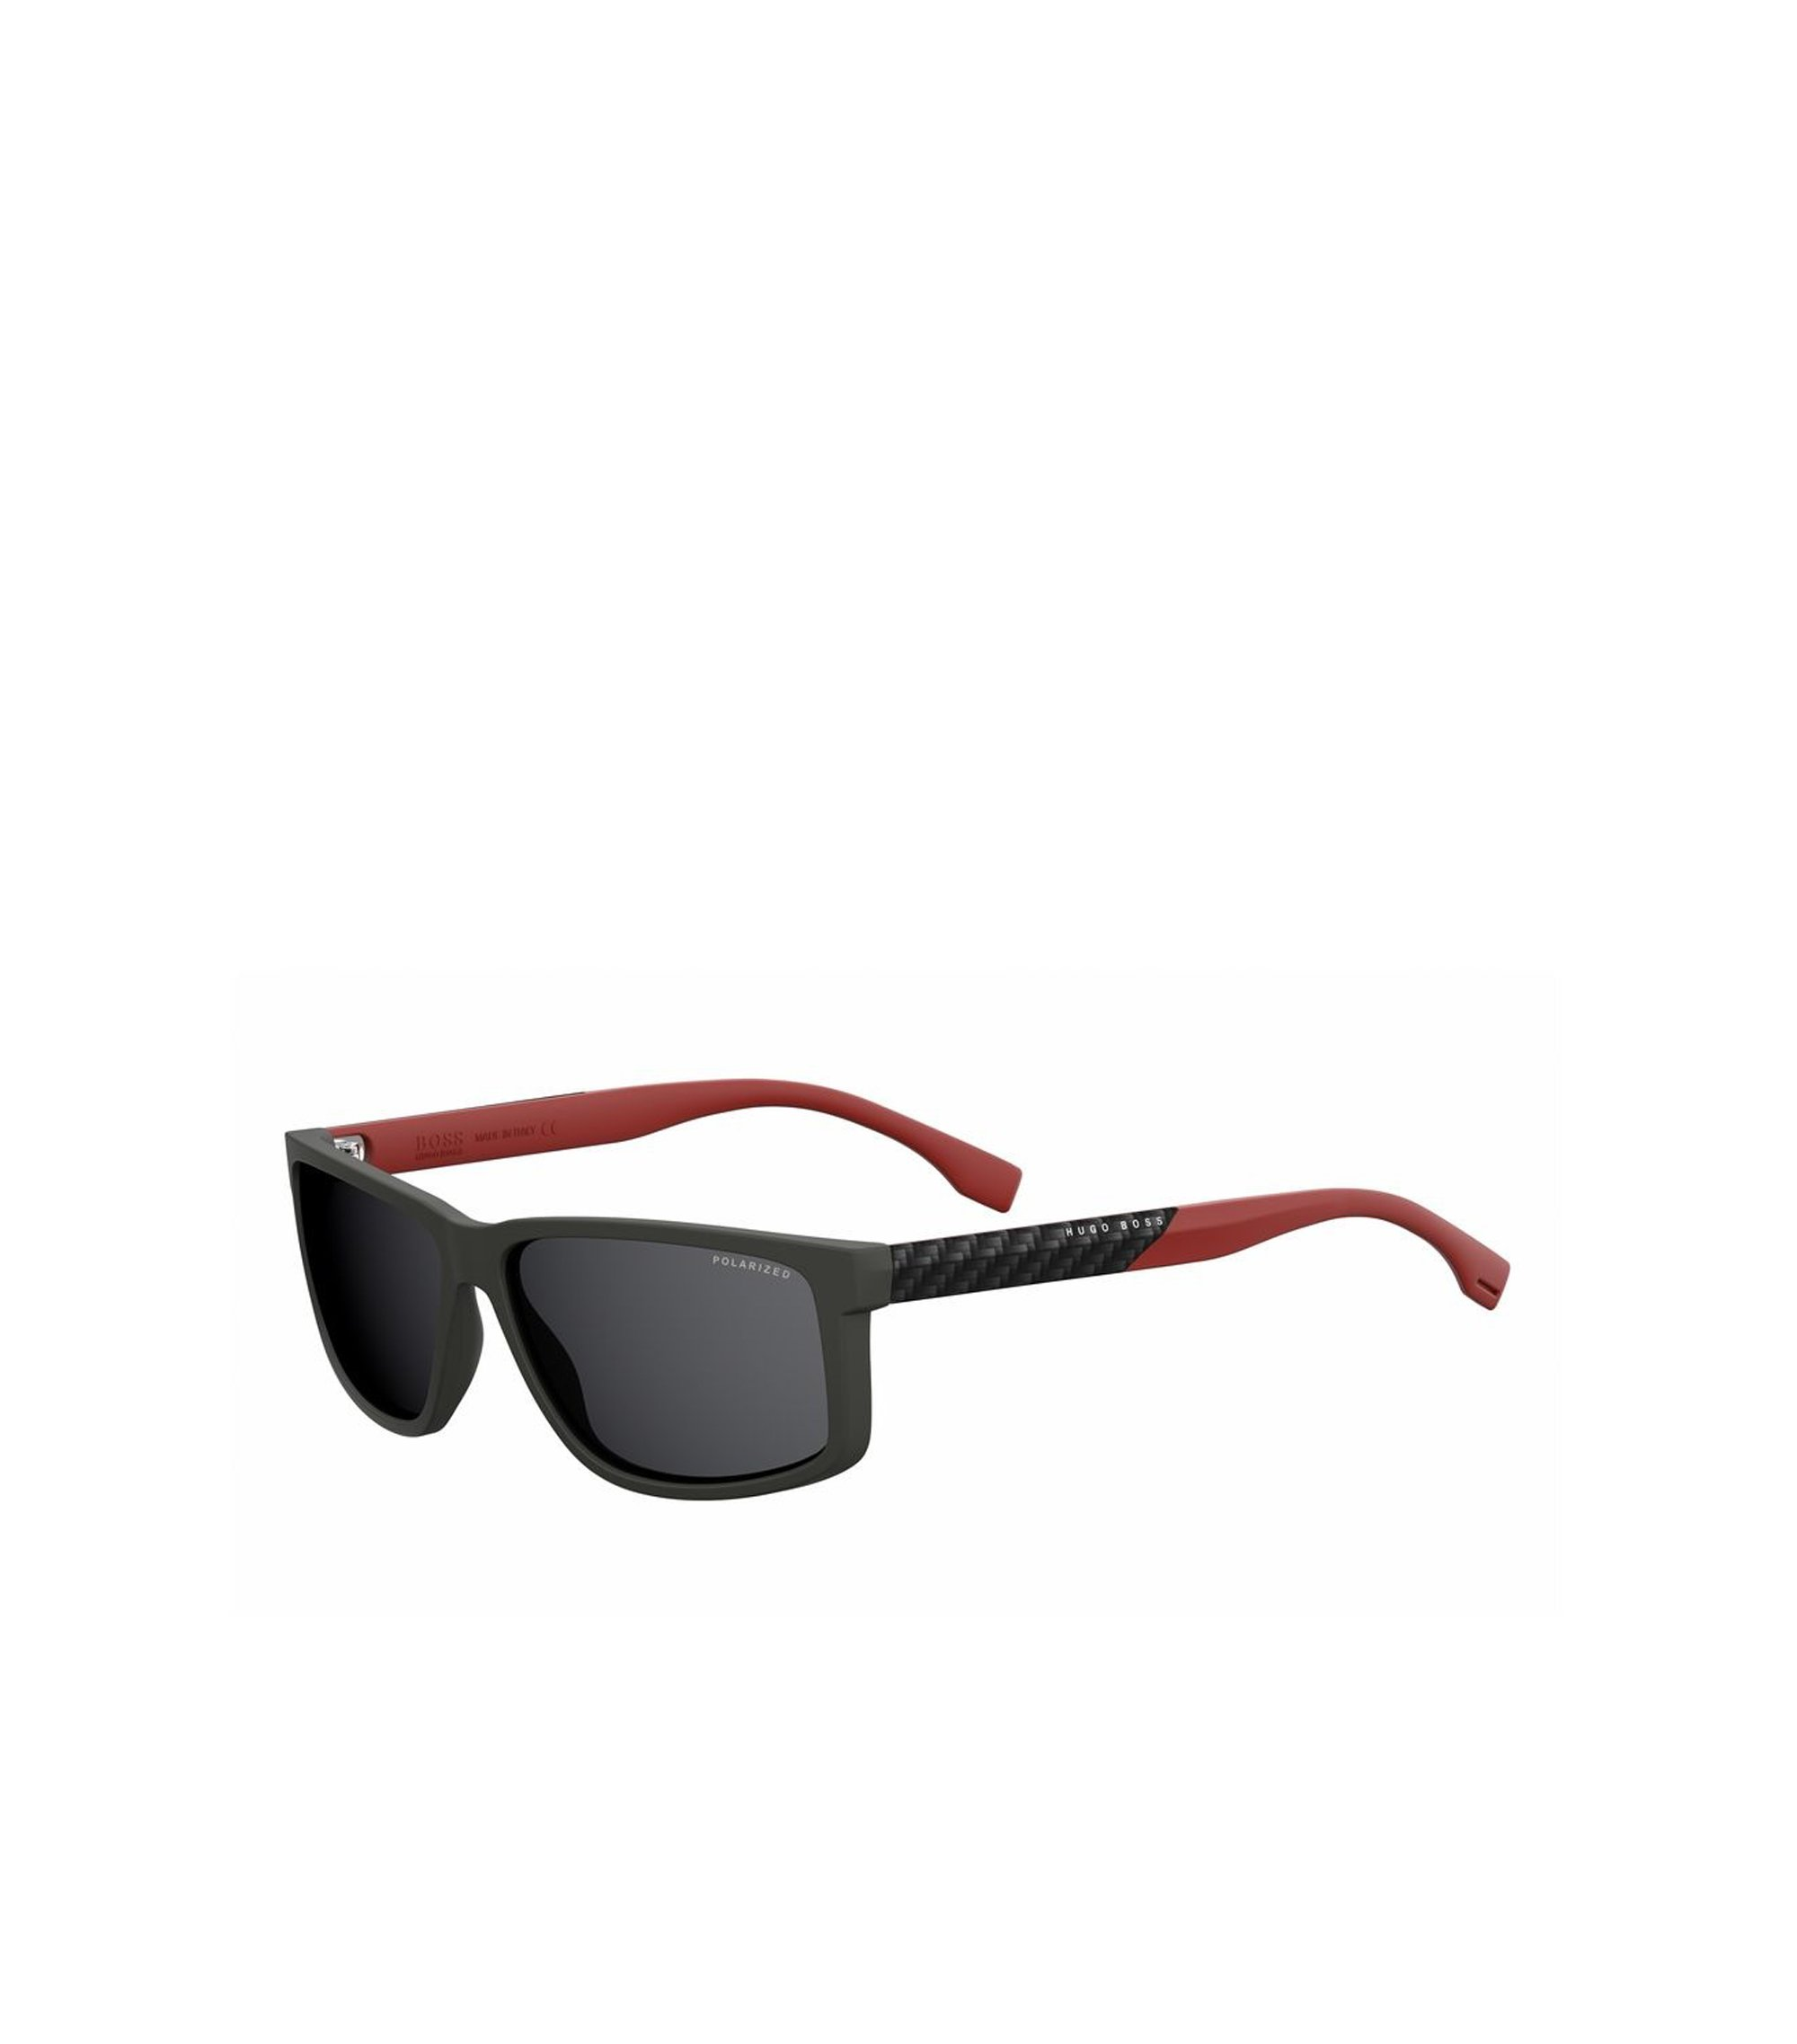 Rectangular Black Lens Carbon Fiber Sunglasses | BOSS 0833S, Assorted-Pre-Pack